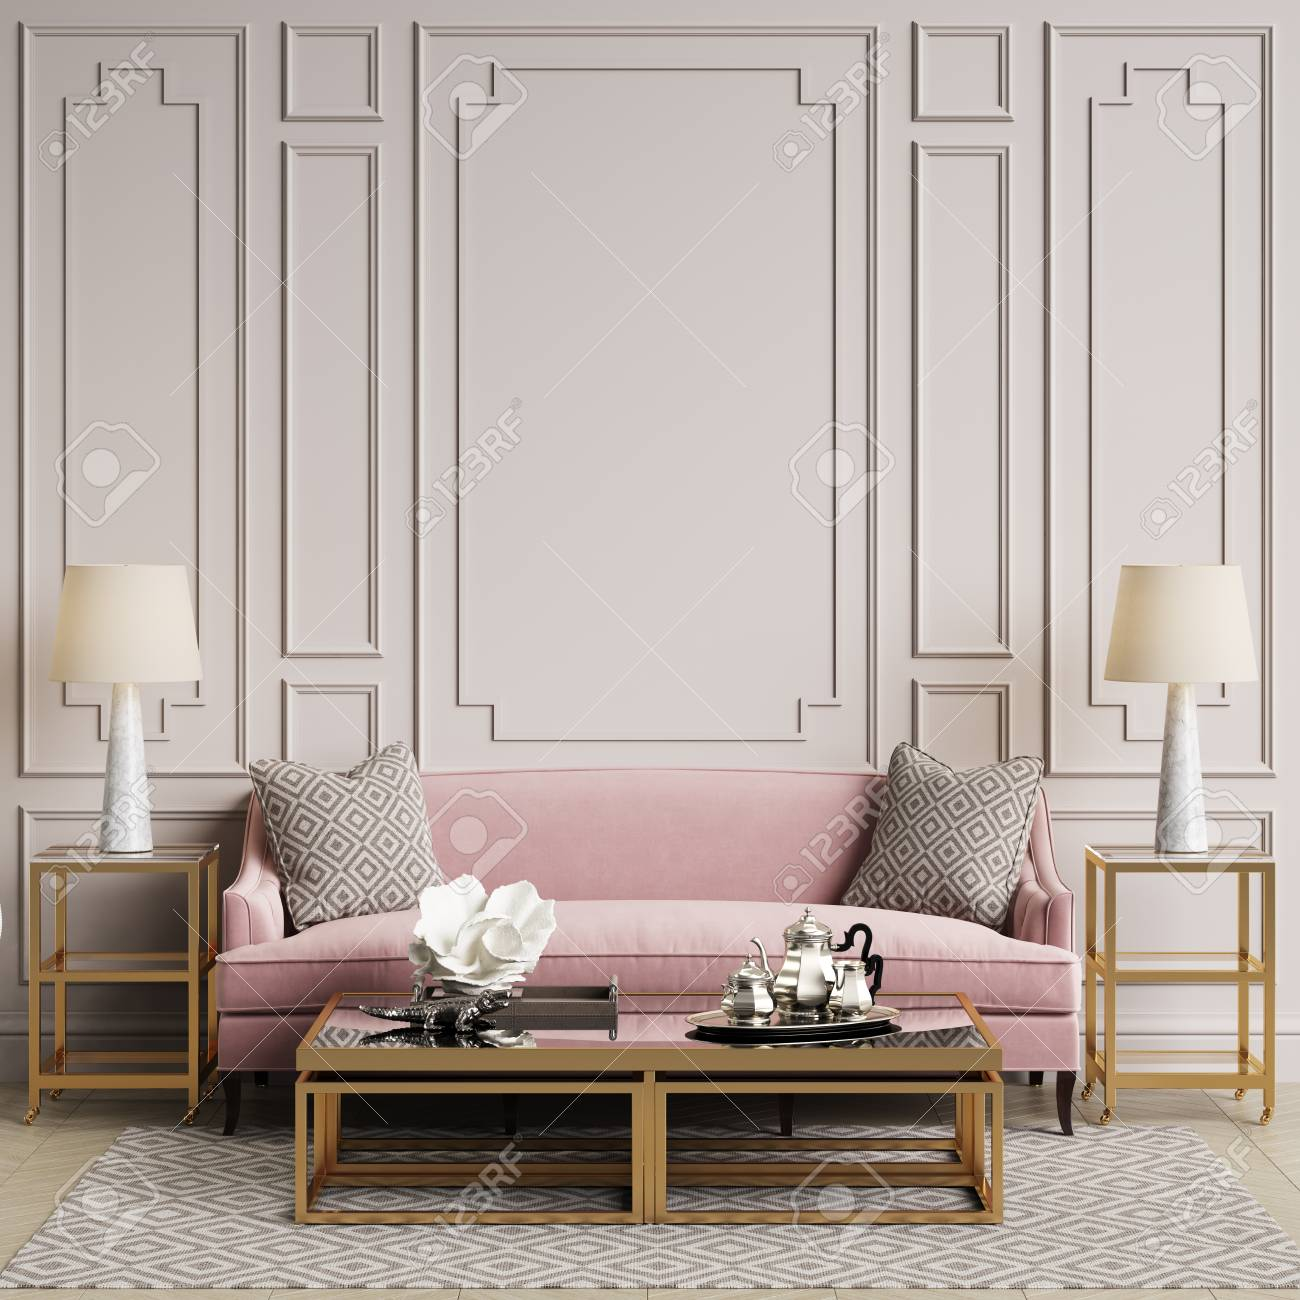 Classic Interior In Pastel Colors Sofa Chairs Sidetables With